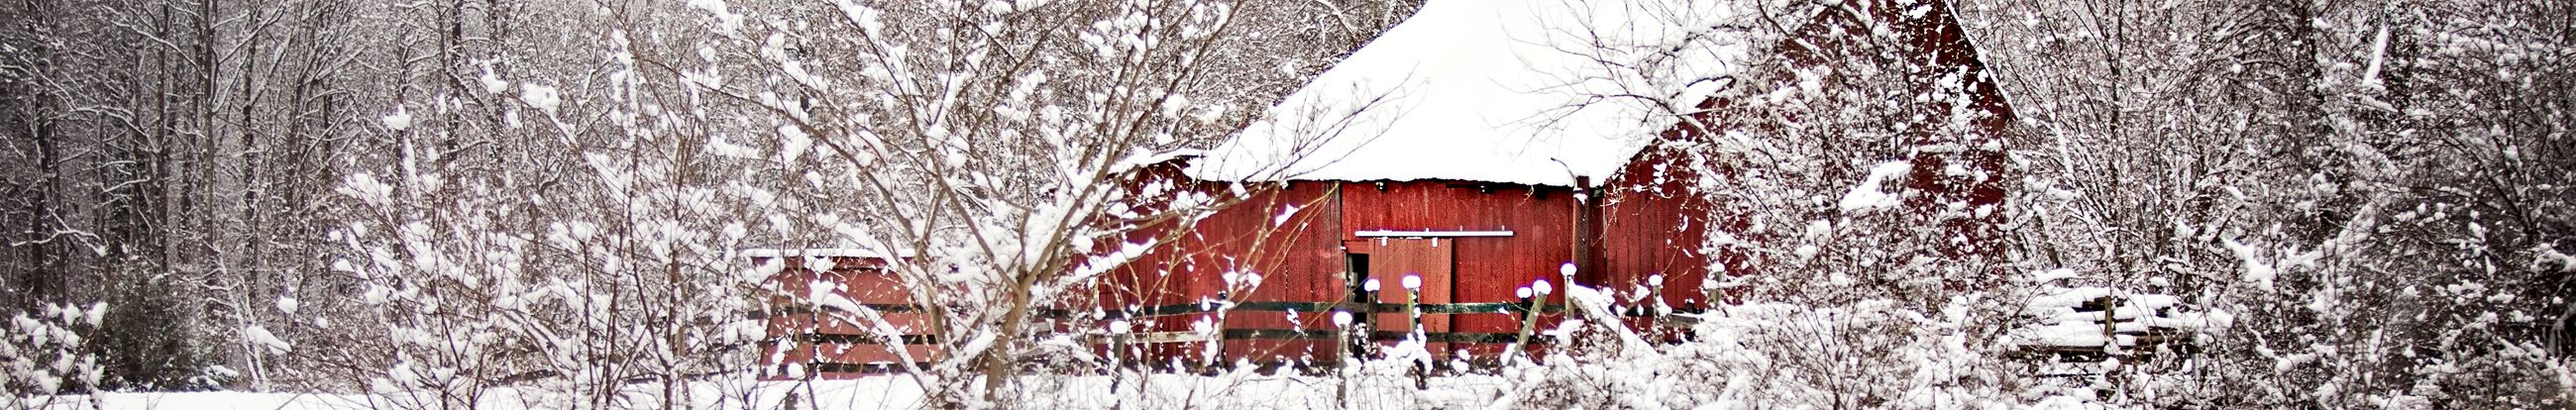 Plum Point Road Barn in Winter